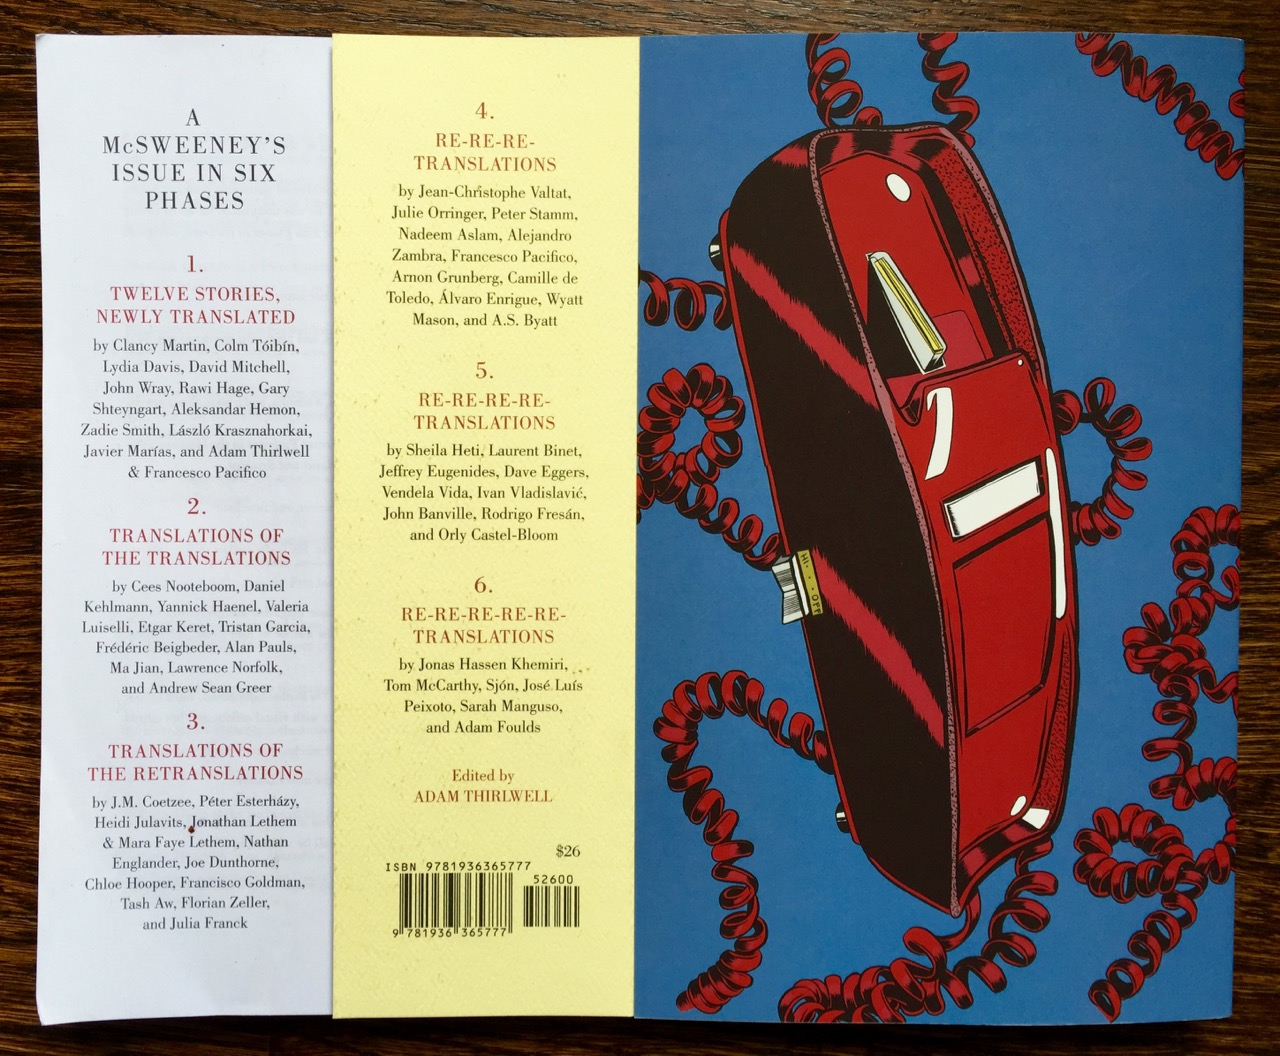 McSweeney's 42 - contents for the multiple stories